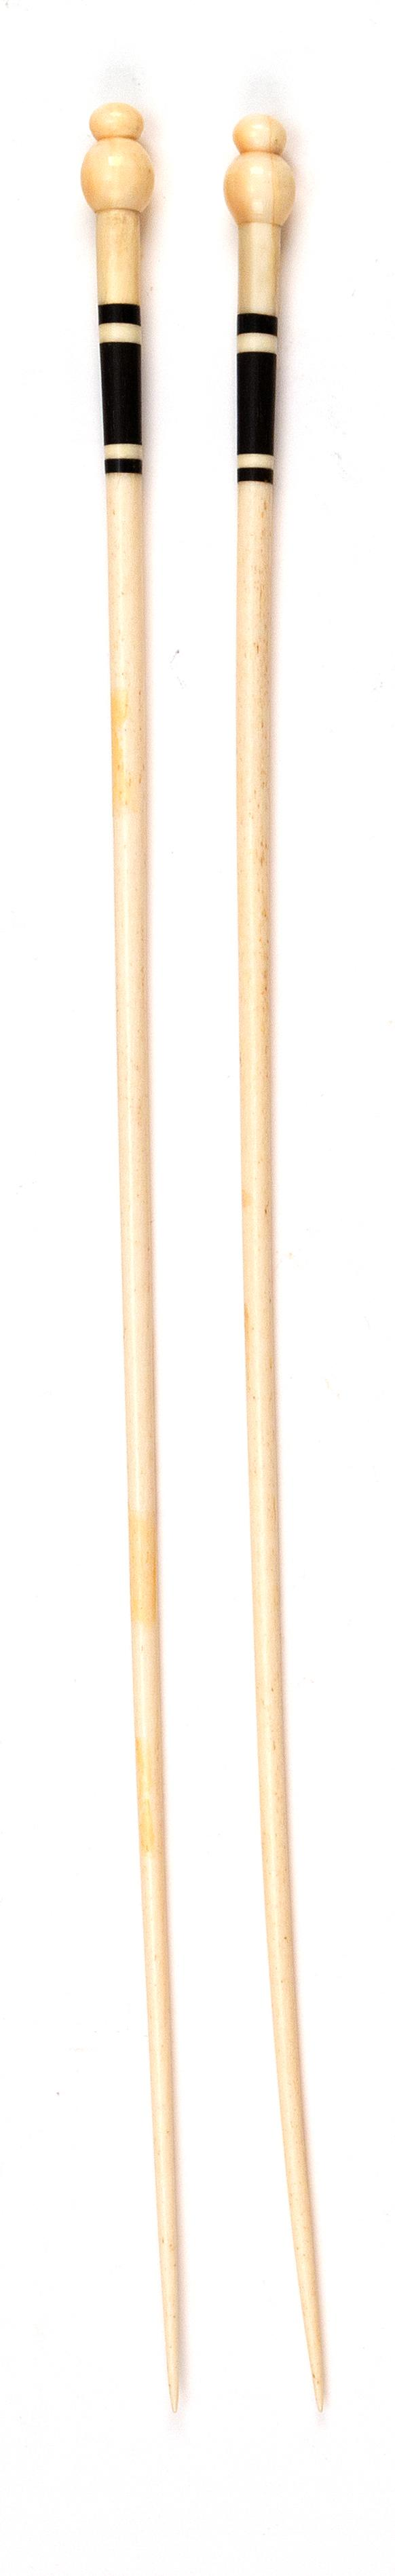 """PAIR OF WHALEBONE AND WHALE IVORY KNITTING NEEDLES Turned ball finials. Ebony banding below finials. Lengths 14.25"""". From the Howlan..."""